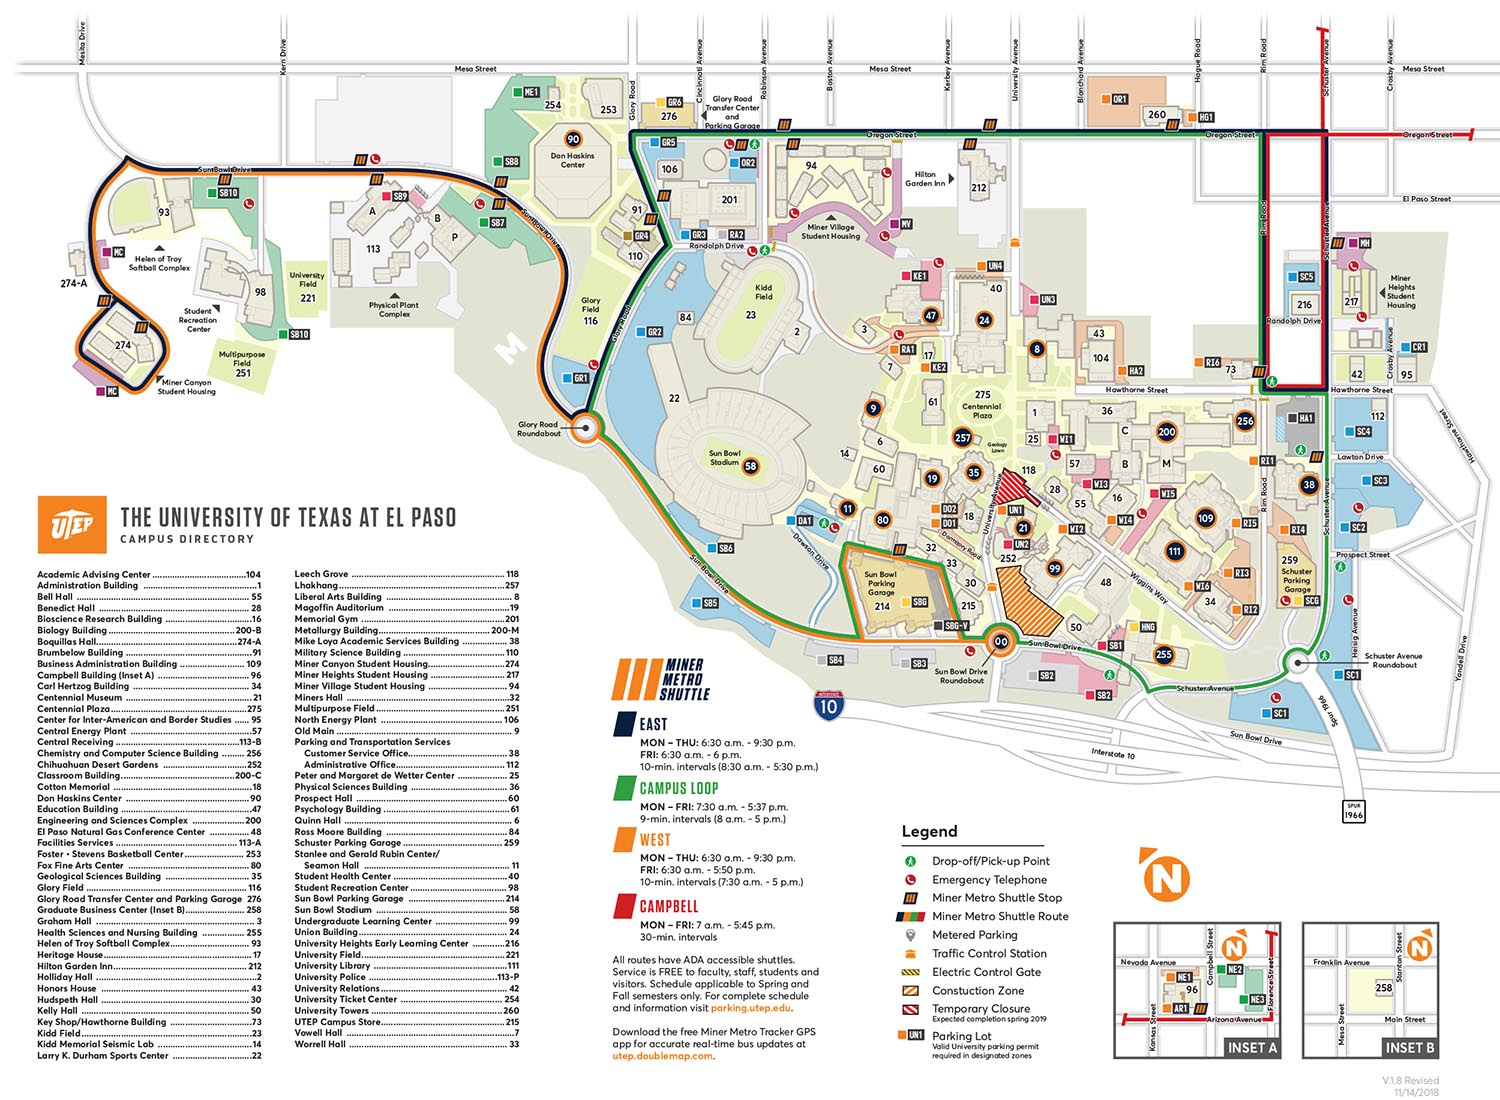 UTEP Walking Tour Map